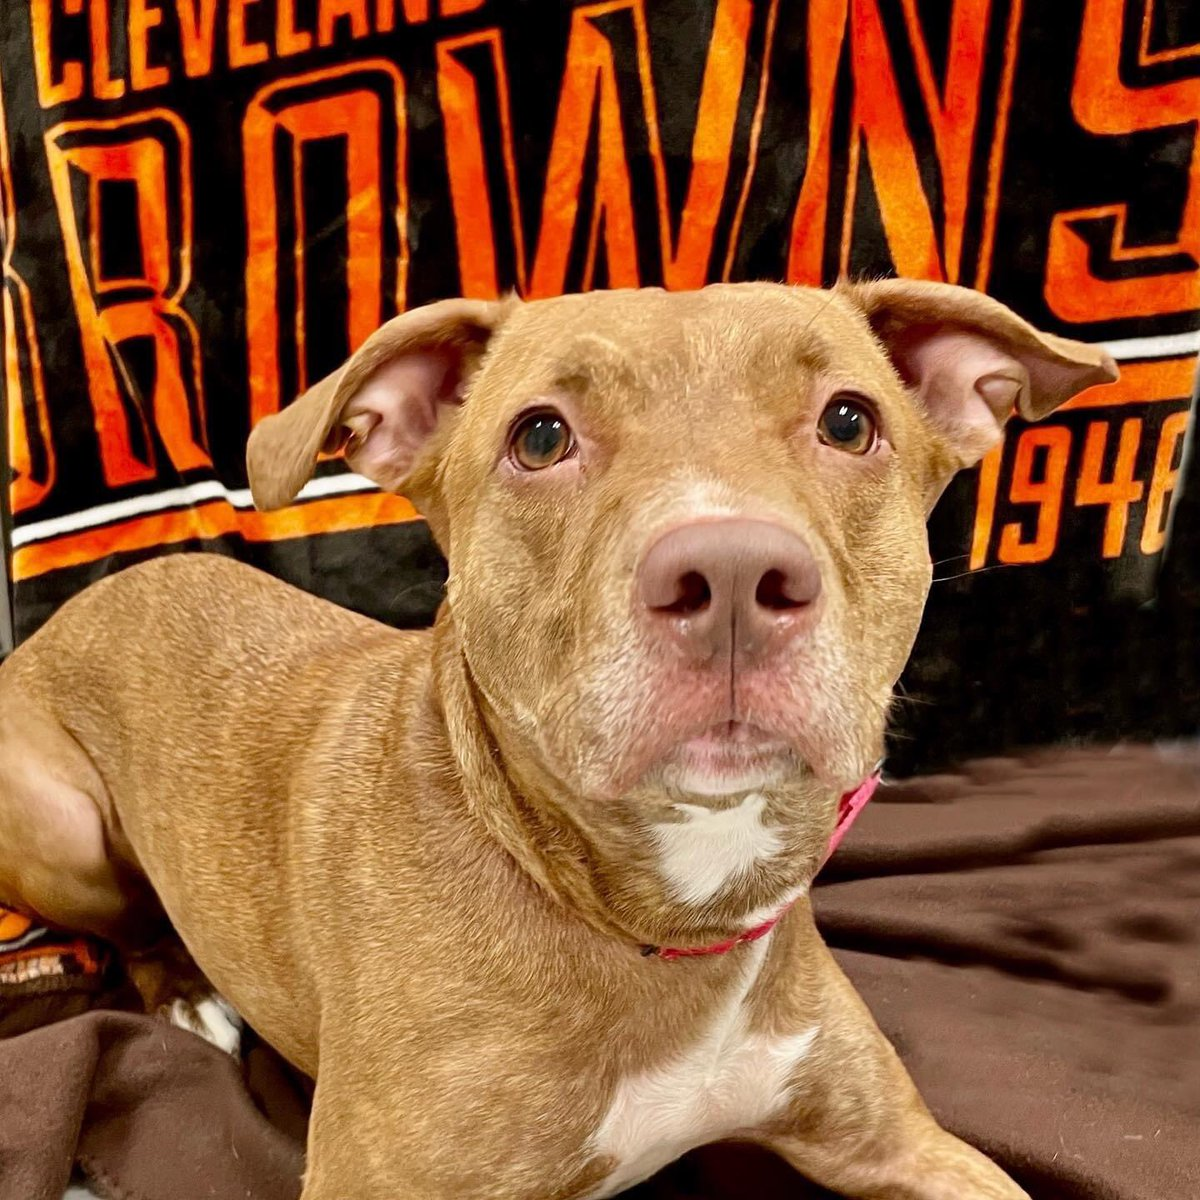 LUNA is a gorgeous pittie mix who loves scratches & attention. She came to ARF as a shy girl, but quickly settled in! If you have room in your heart & on your couch, contact her consultant, Rose at 440-823-4614 #wewantmore  #gobrowns